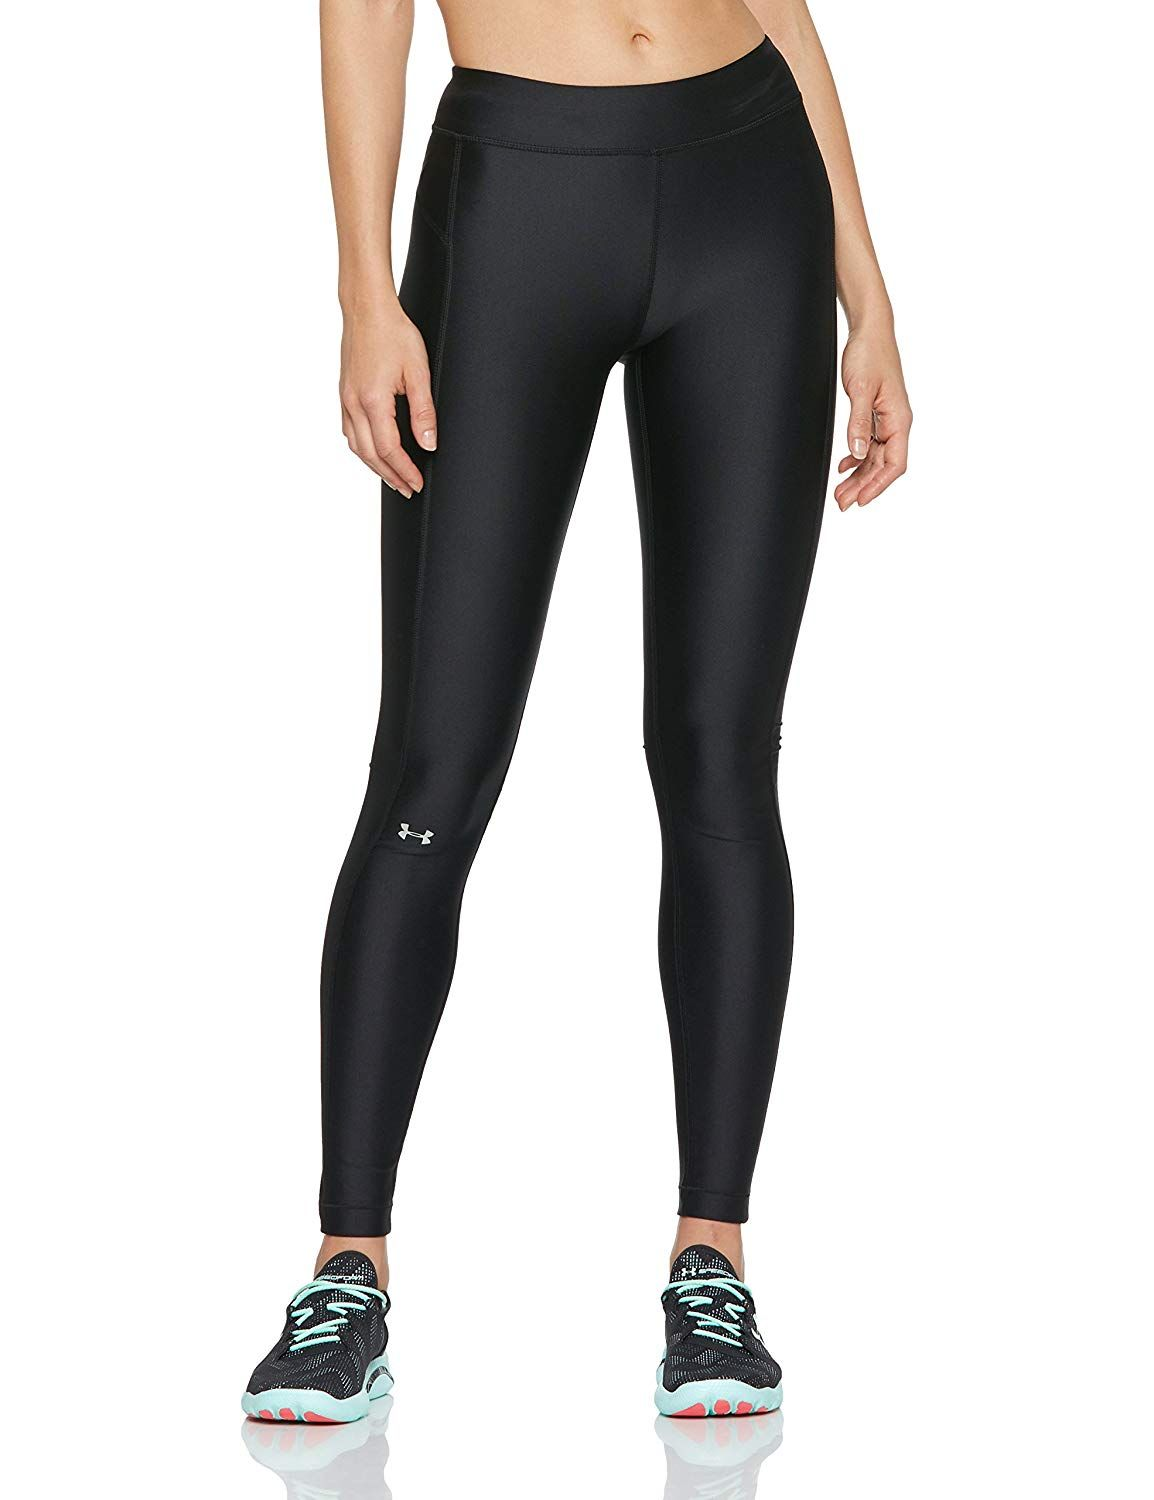 Under Armour Womens Heatgear Armour Legging You Can Find Out More Details At The Link Of The Image This Under Armour Women Gym Wear For Women Under Armour